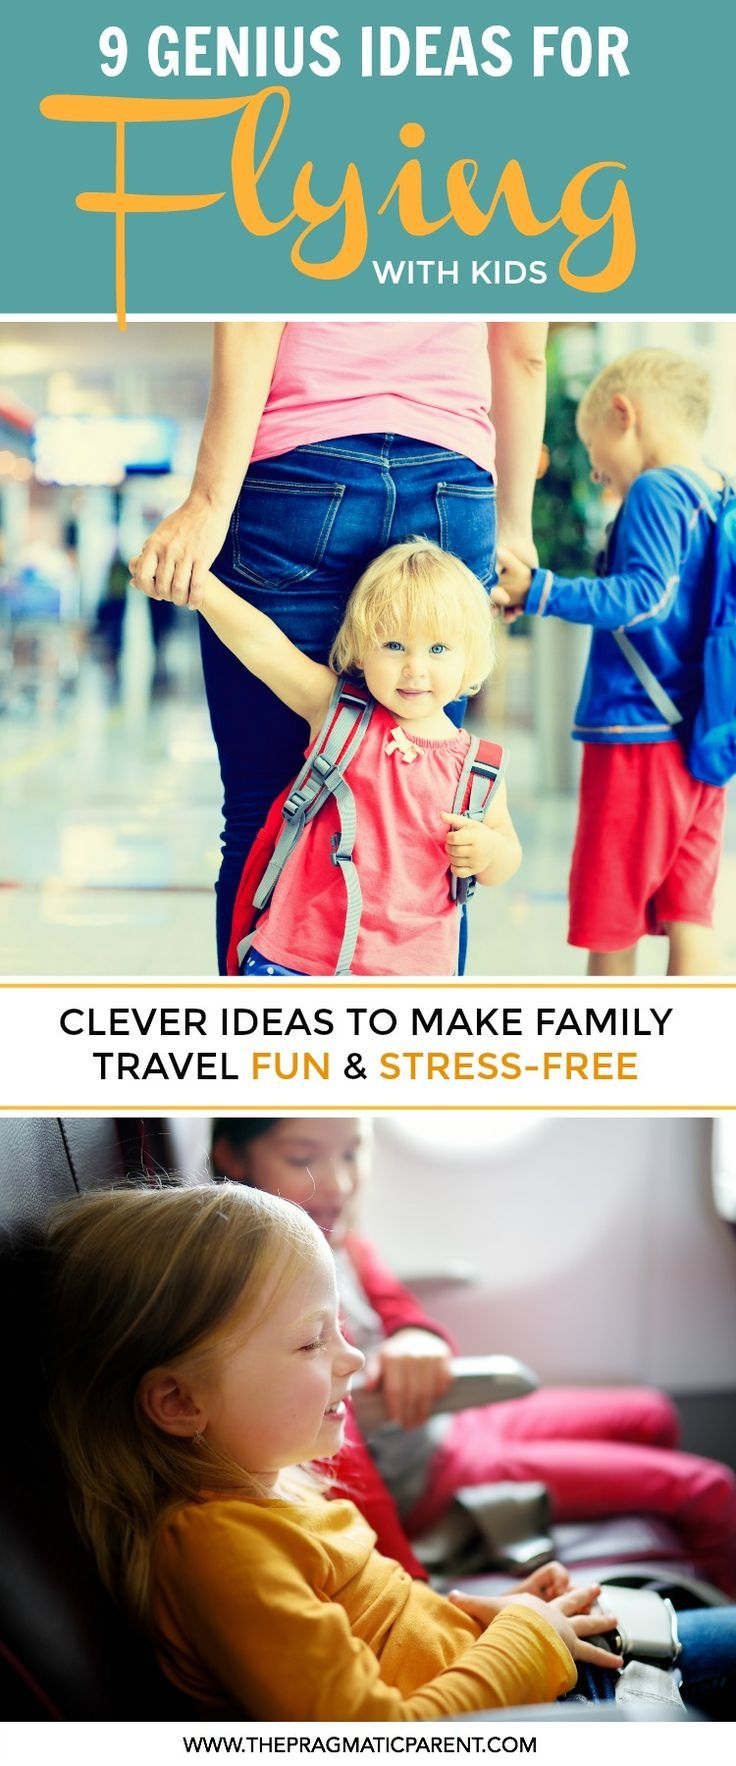 9 Genius Tips to Make Flying with Kids a Breeze. Flying with Kids doesn't have to be stressful, it can be painless and fun if you properly prepare for your flight and bring all the right things.